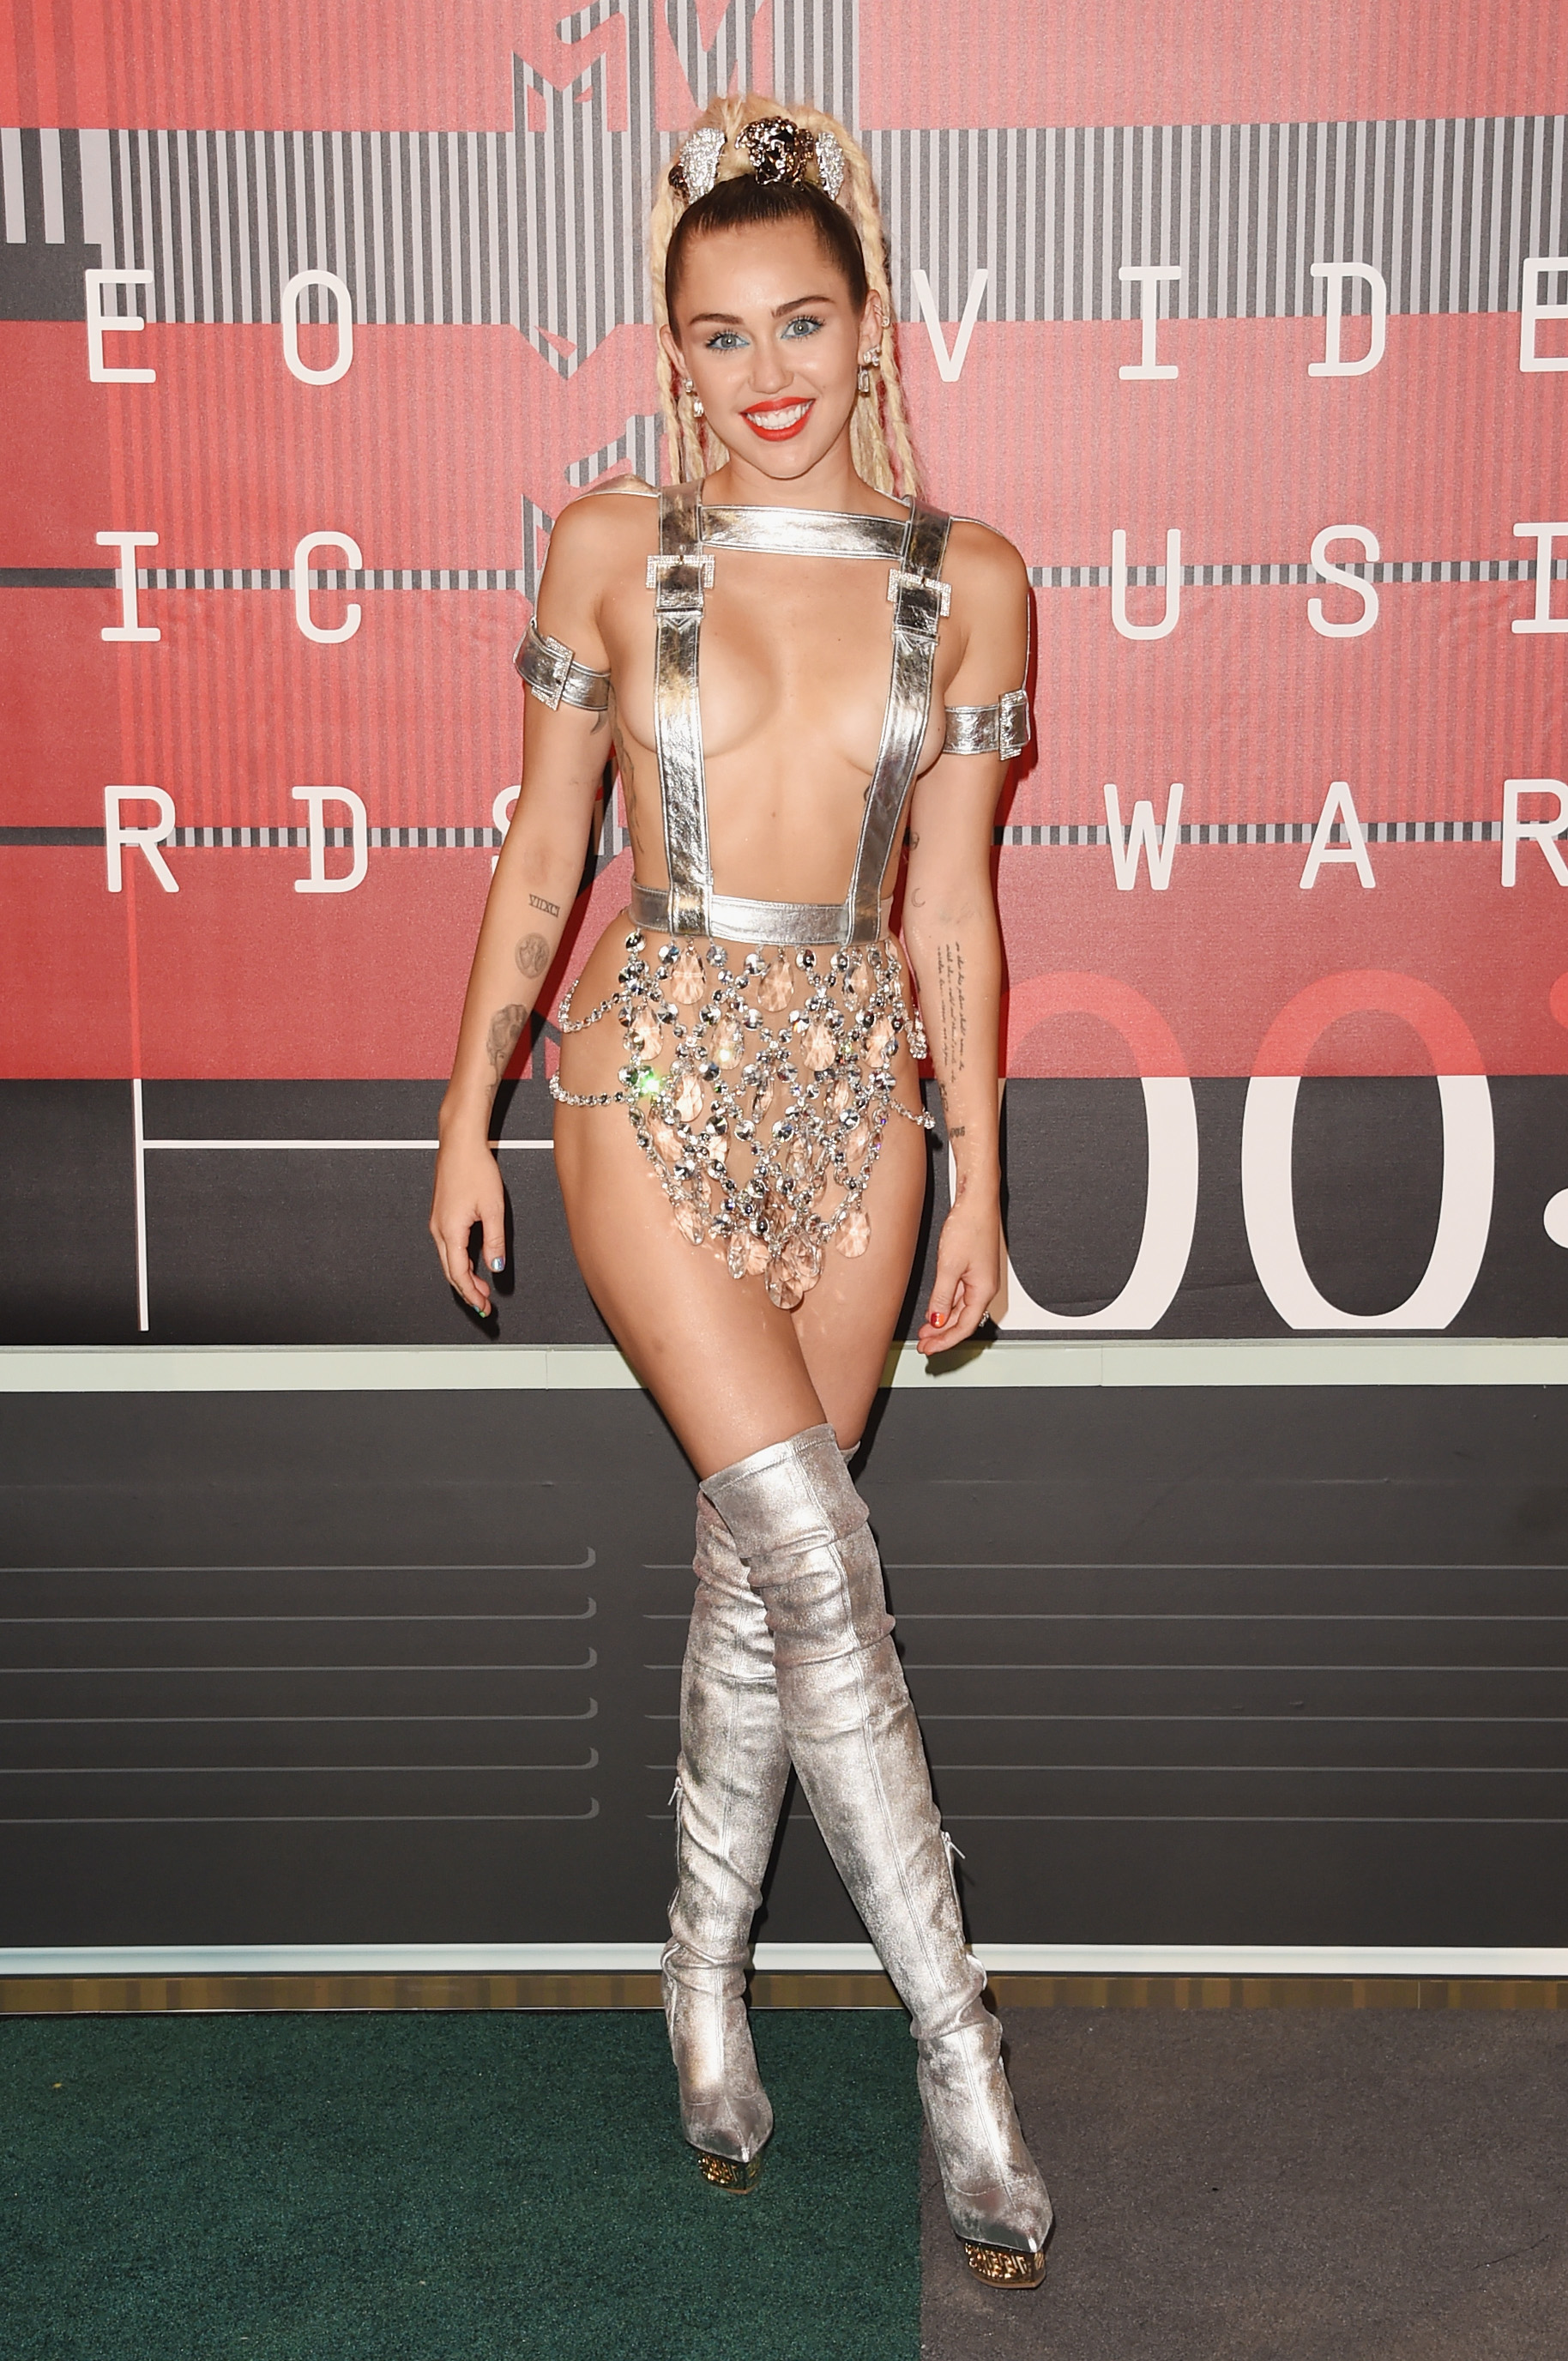 LOS ANGELES, CA - AUGUST 30:  Host Miley Cyrus, styled by Simone Harouche, wearing a custom Versace outfit and boots, attends the 2015 MTV Video Music Awards at Microsoft Theater on August 30, 2015 in Los Angeles, California.  (Photo by Jason Merritt/Getty Images)